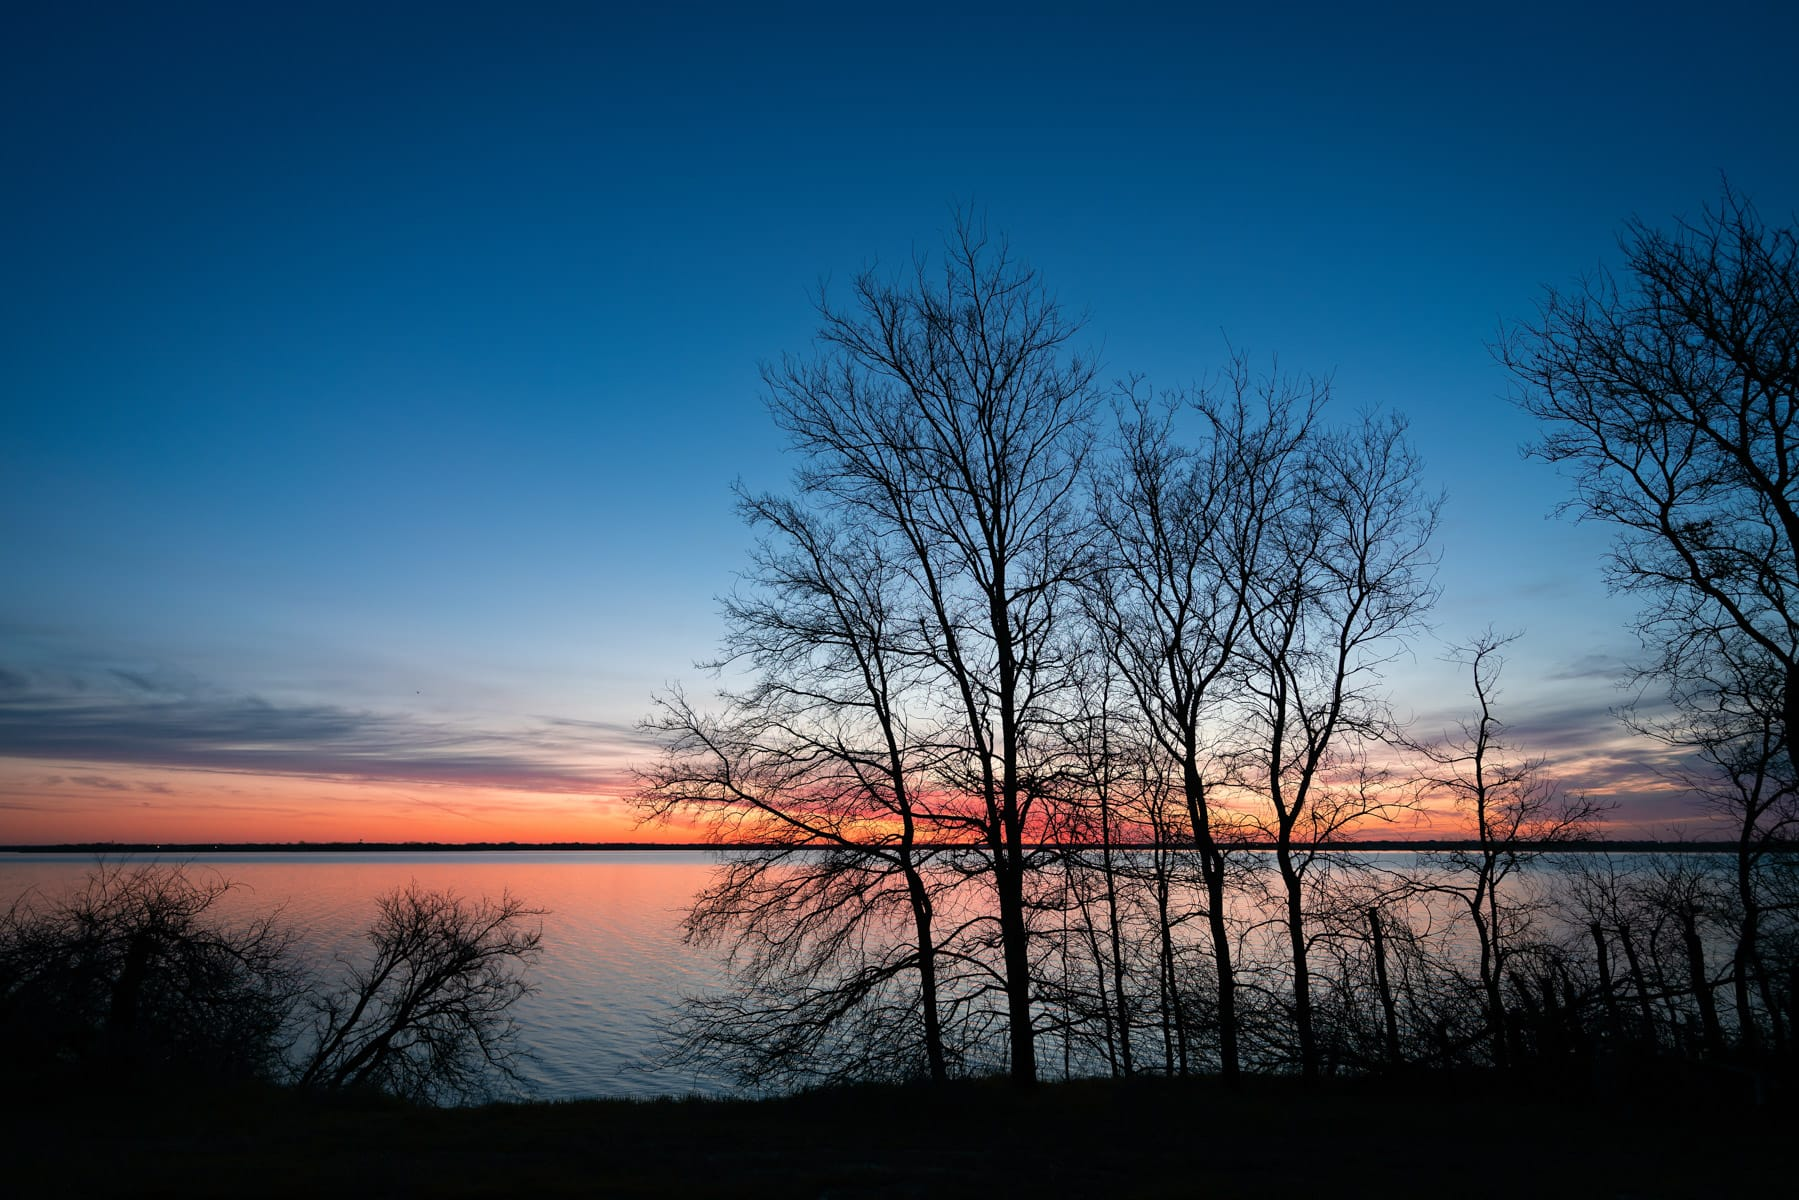 The sun rises on trees along the shore of North Texas' Lake Lavon.